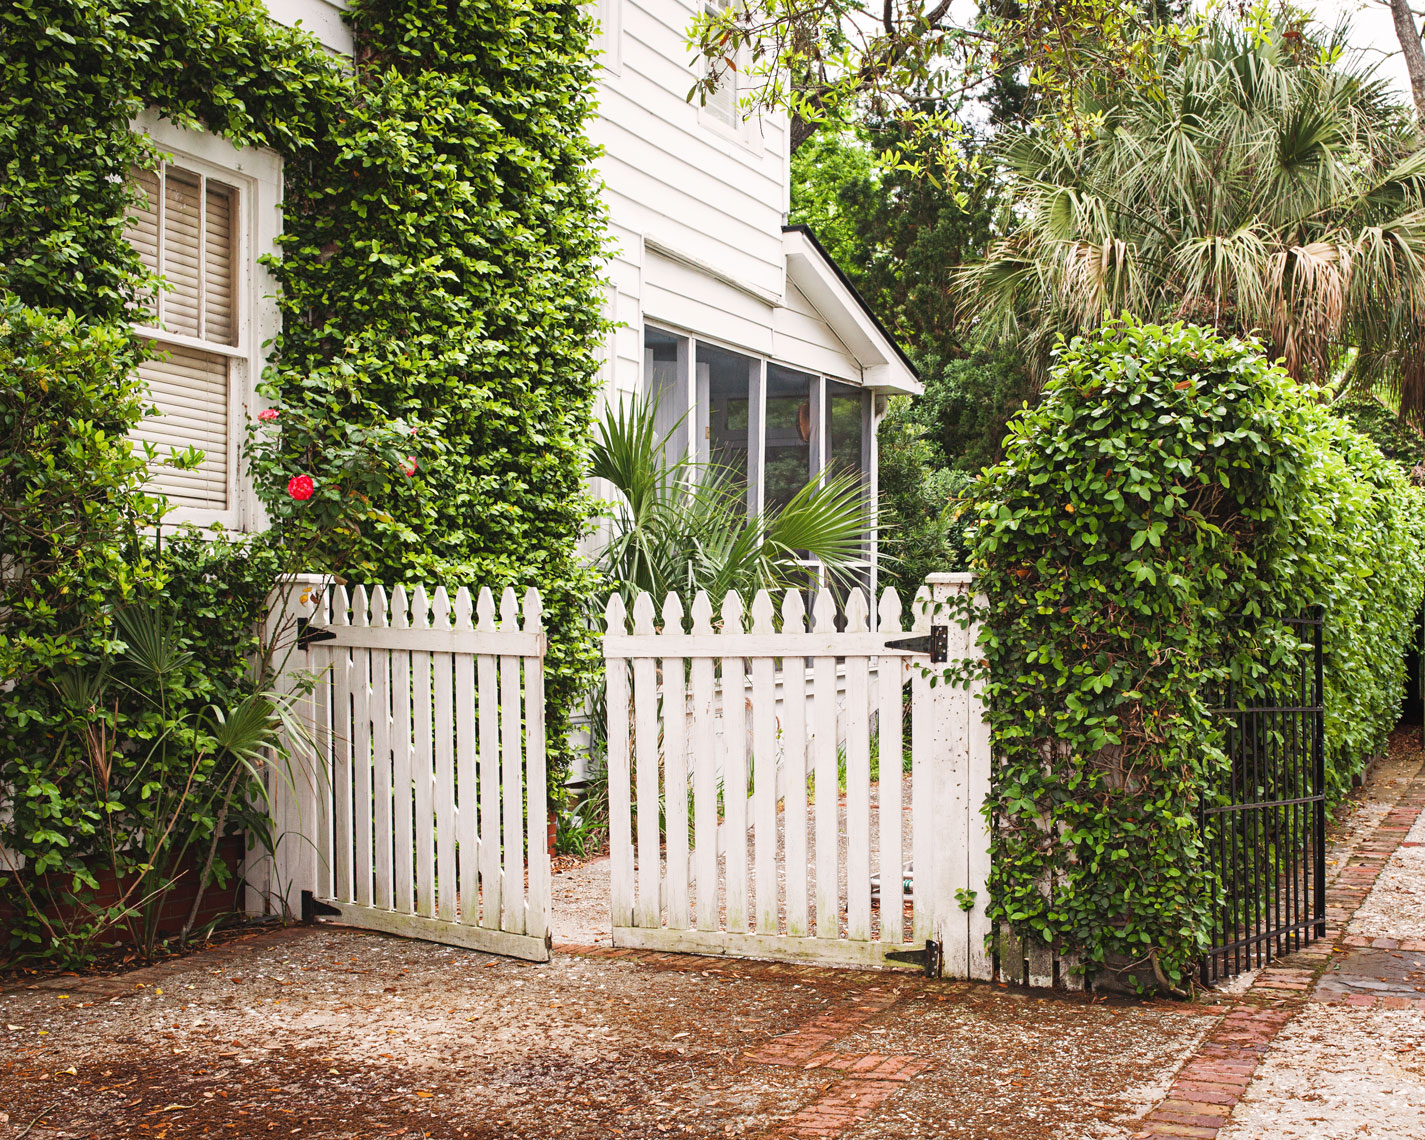 Travel_CharlestonSC_23_2397